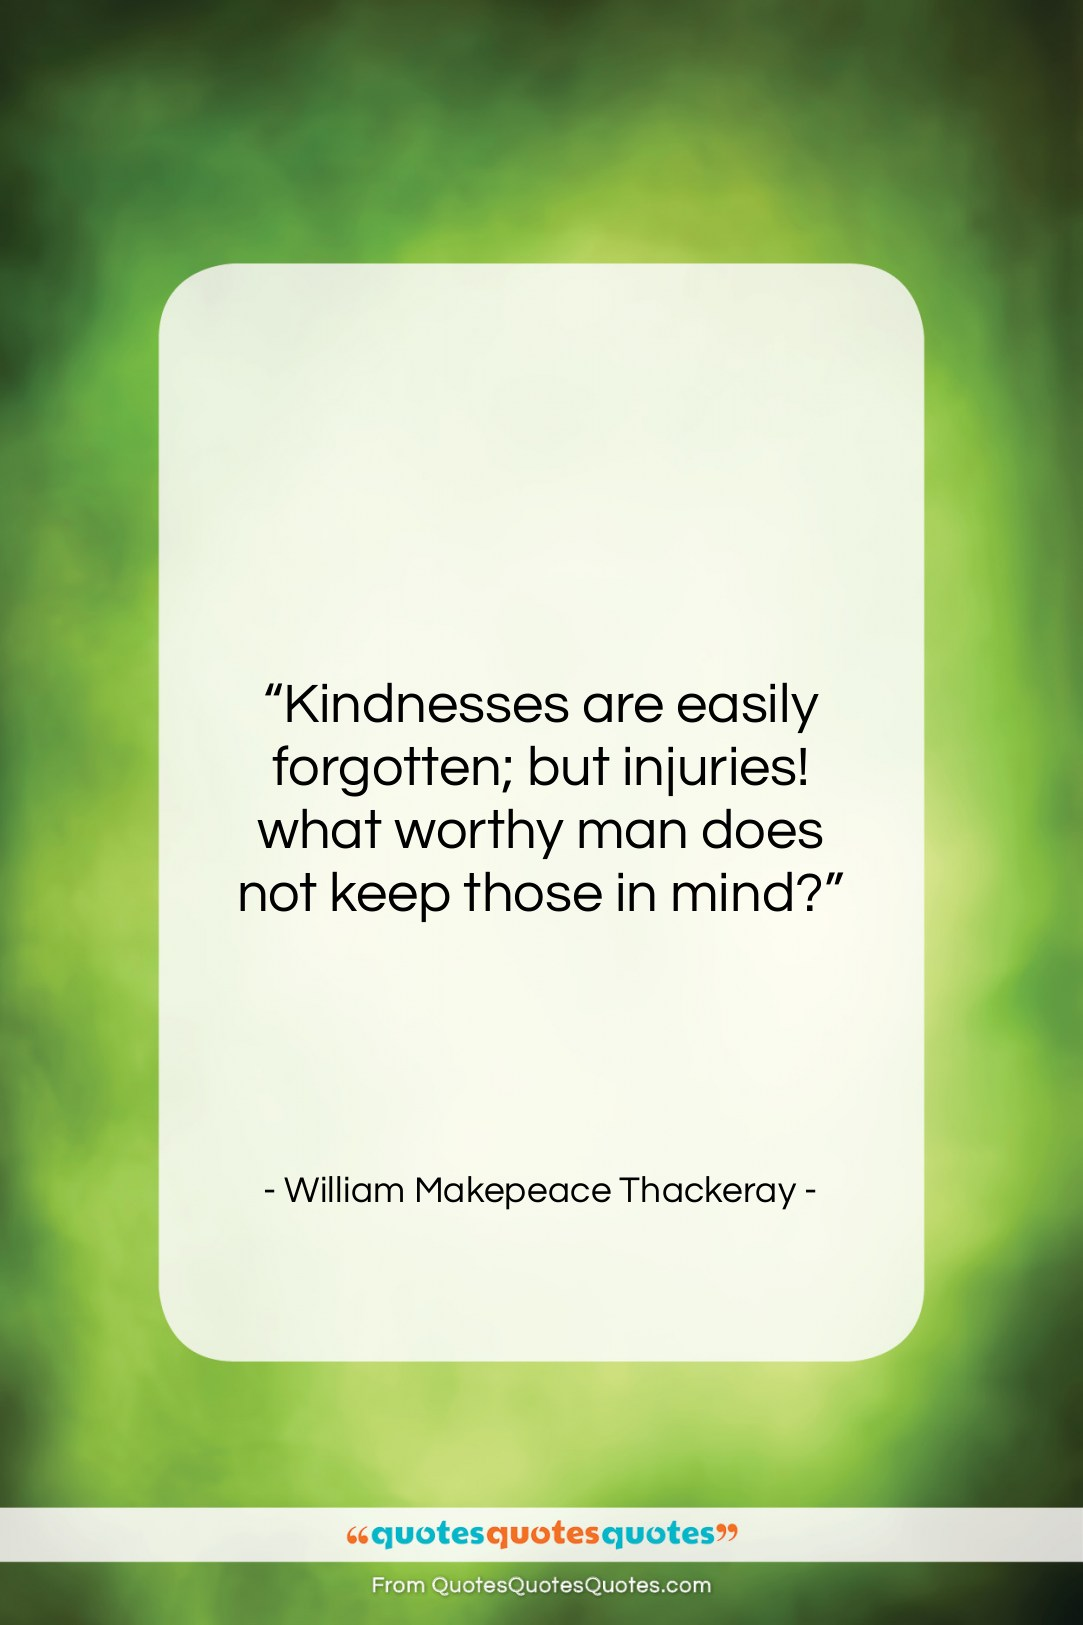 """William Makepeace Thackeray quote: """"Kindnesses are easily forgotten; but injuries! what…""""- at QuotesQuotesQuotes.com"""